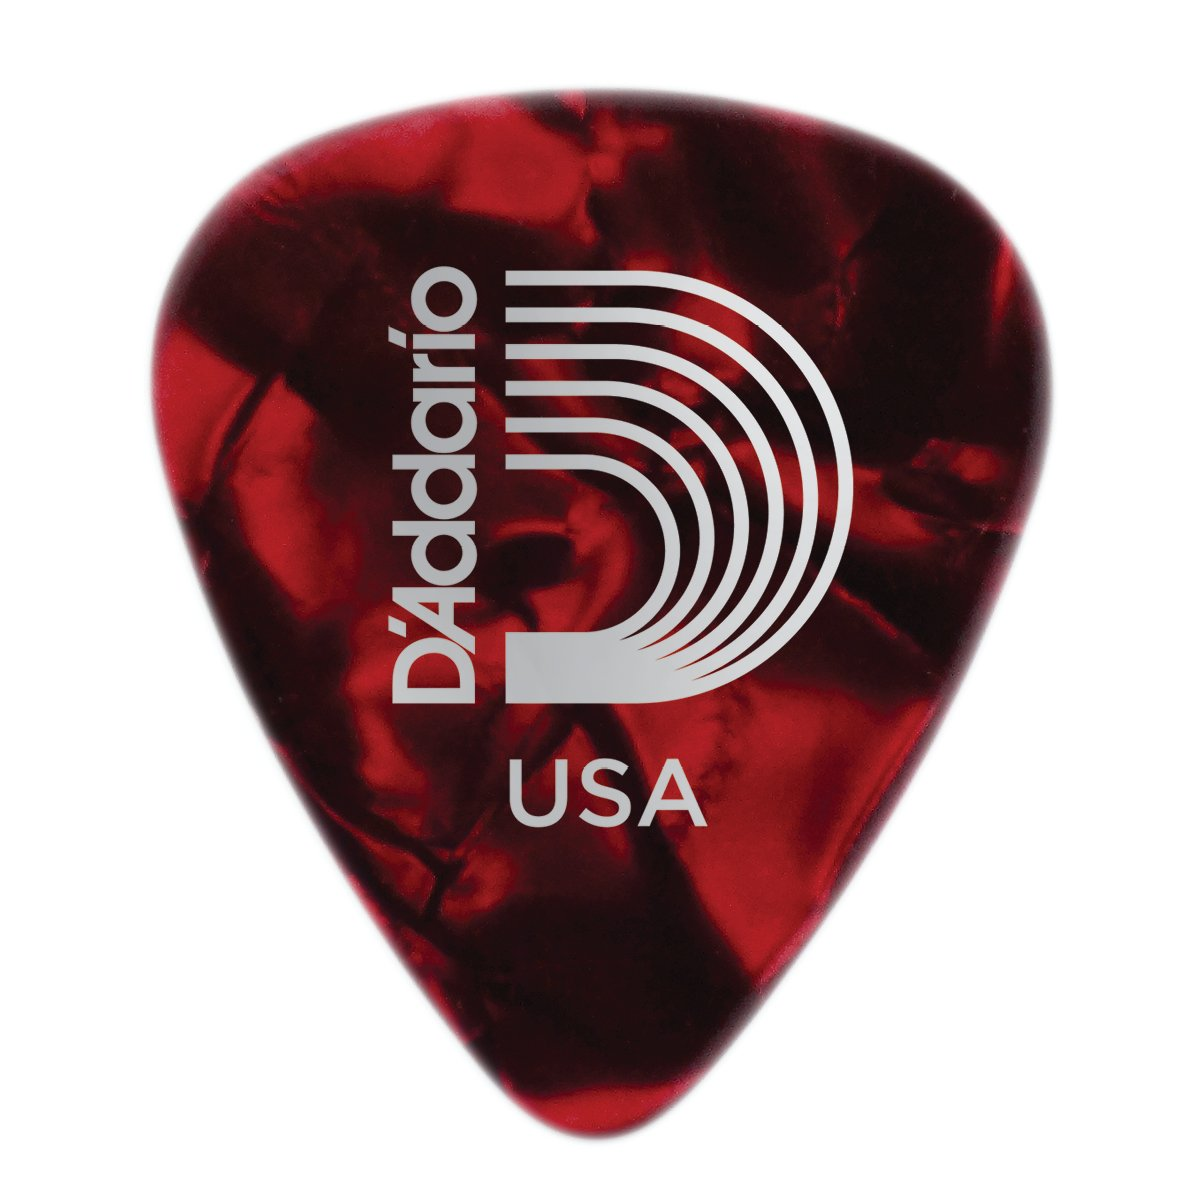 DAddario Accessories Pearl Celluloid Guitar Picks Assorted 25 Pack 1CAPX-25